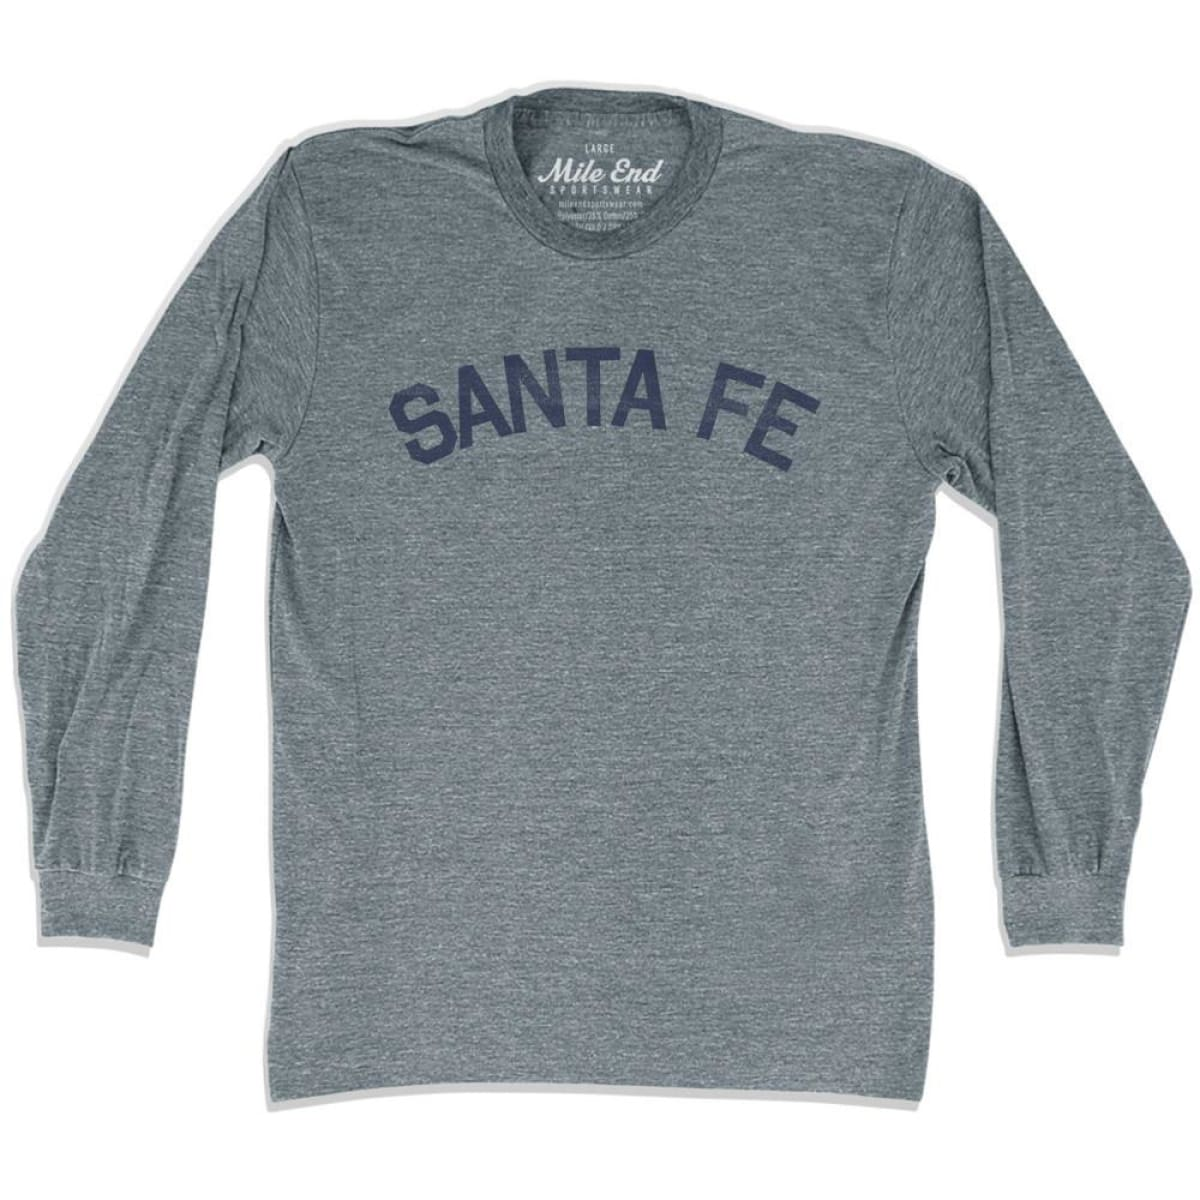 Santa Fe City Vintage Long Sleeve T-Shirt - Athletic Grey / Adult X-Small - Mile End City